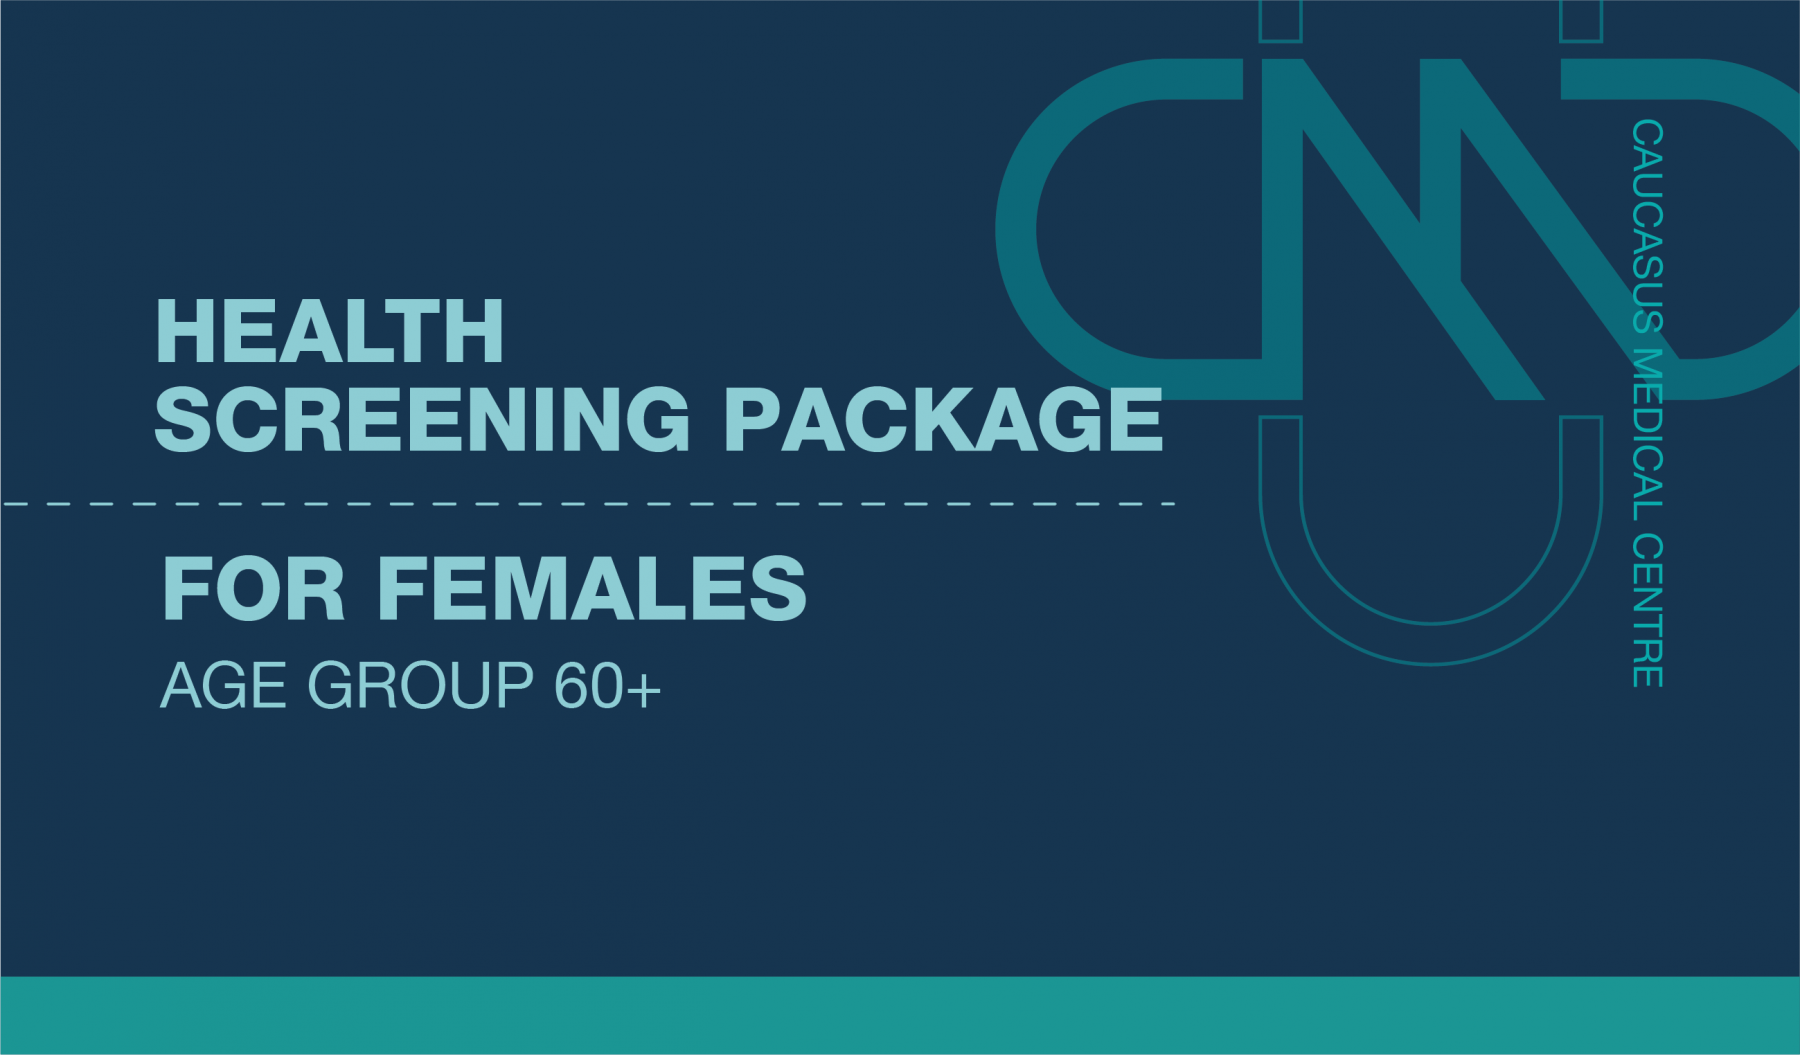 PREMIUM HEALTH SCREENING PACKAGE FOR FEMALES 60 AND OLDER